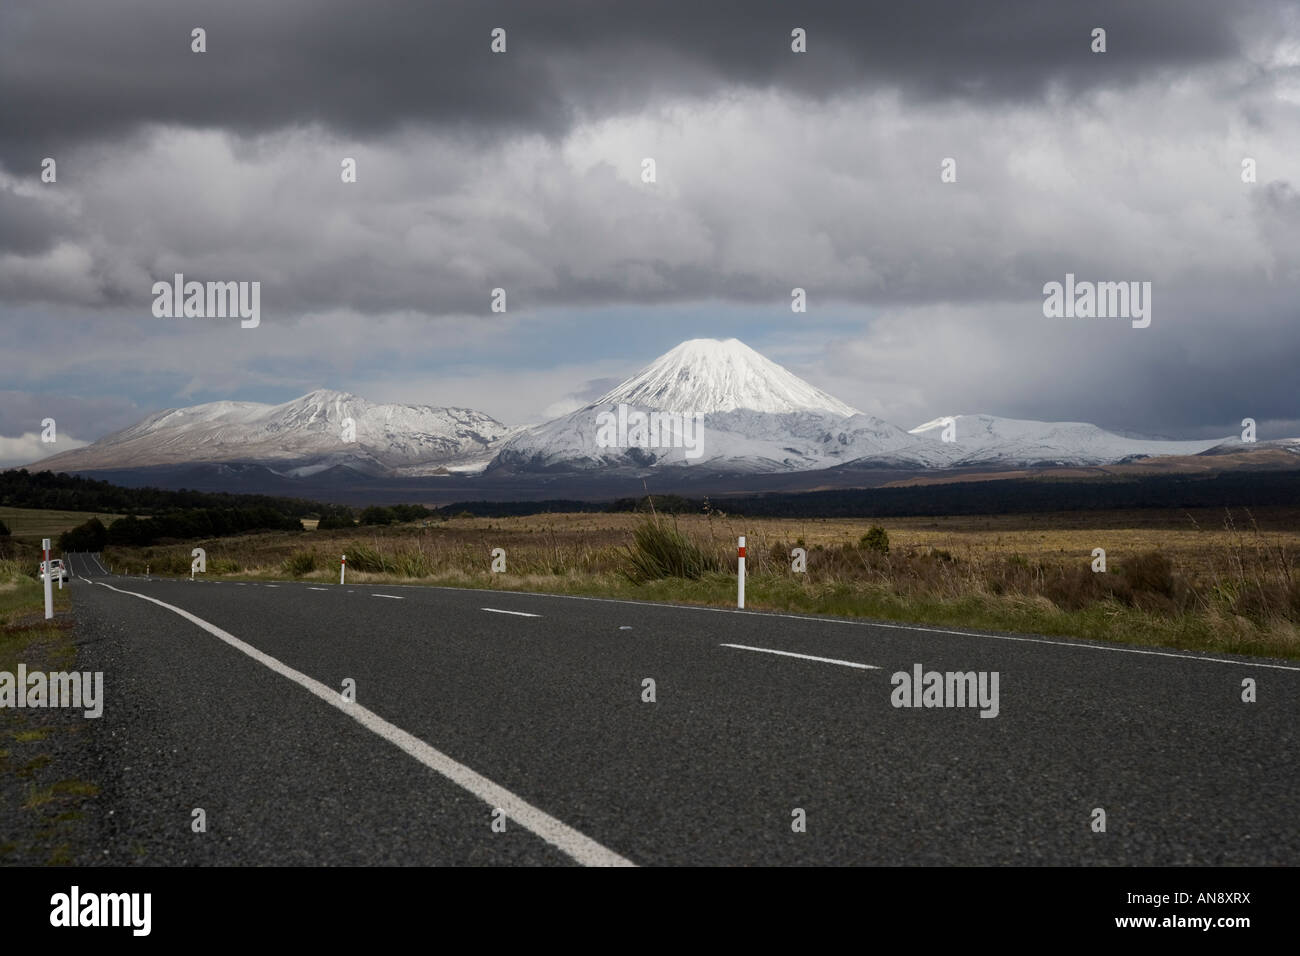 View of a snow covered Mount Ngauruhoe volcano taken from the Desert Road, New Zealand Stock Photo